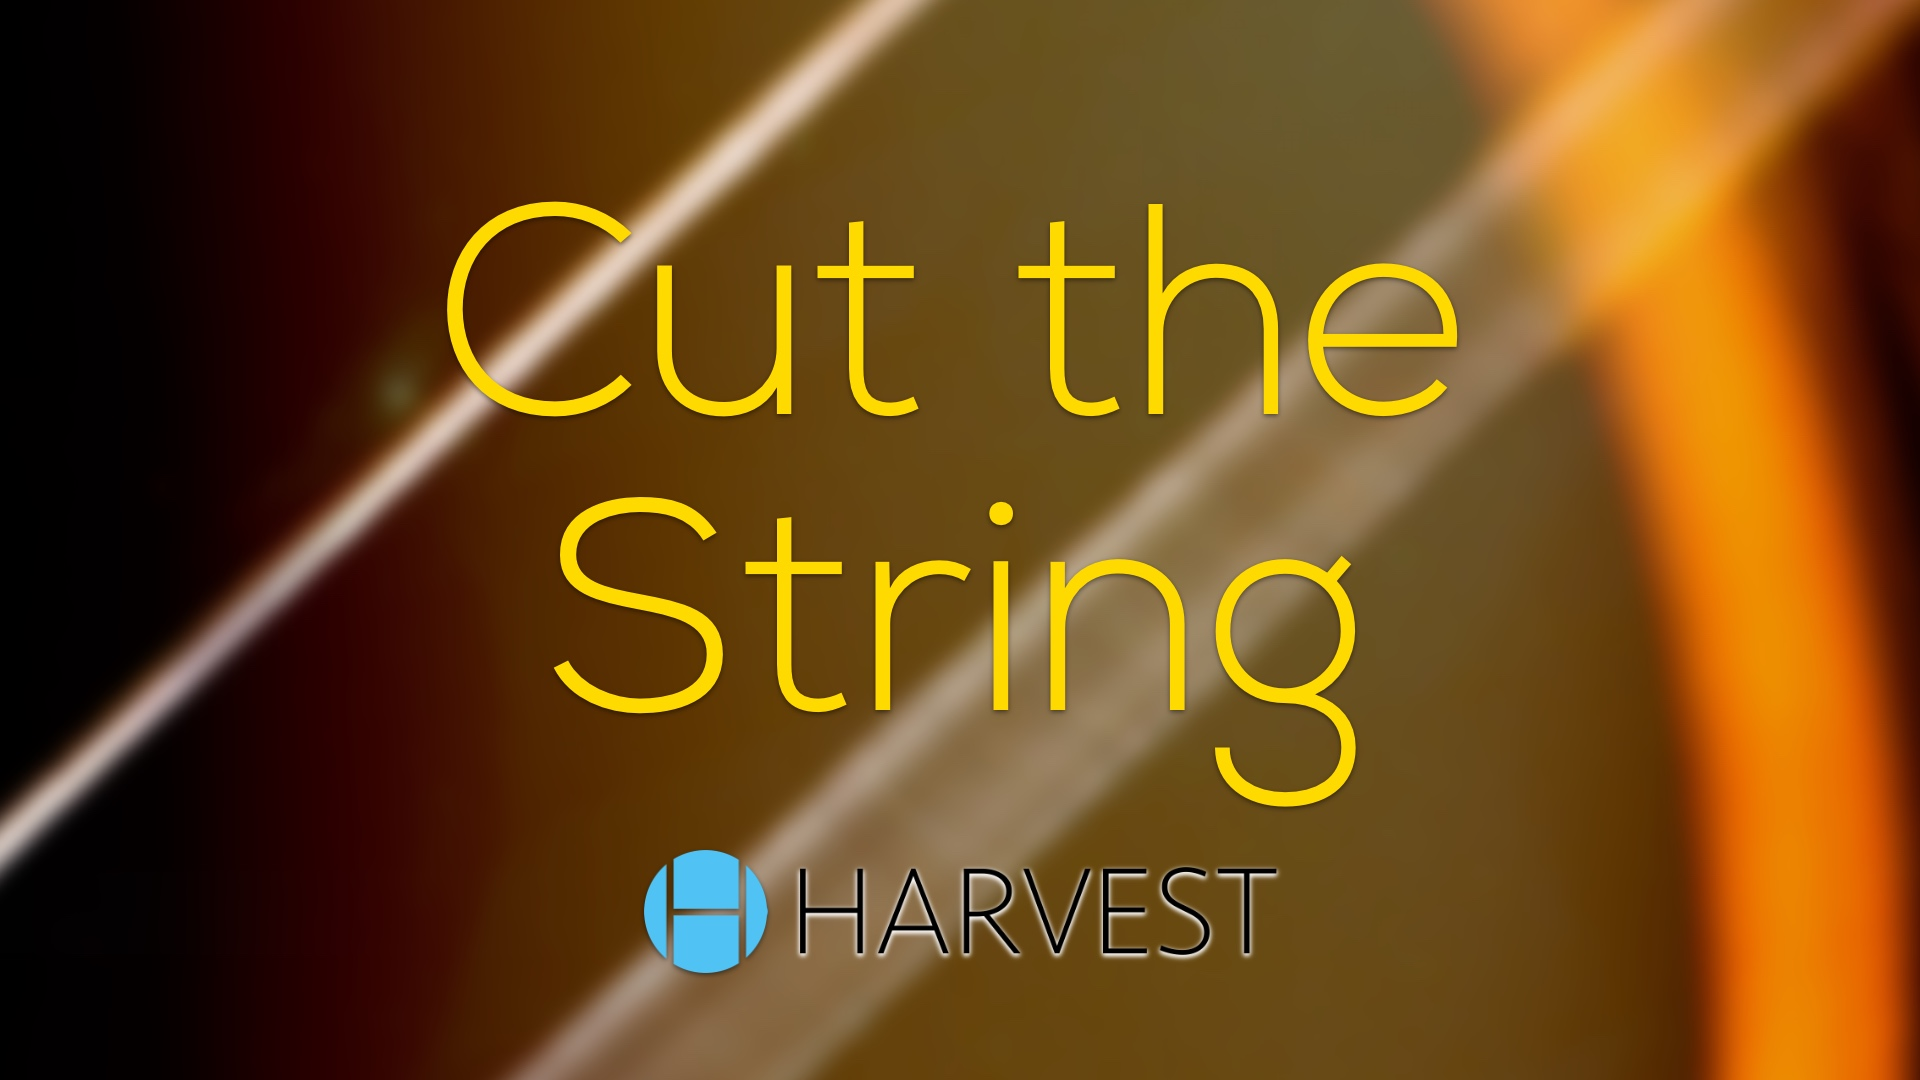 Cut the String